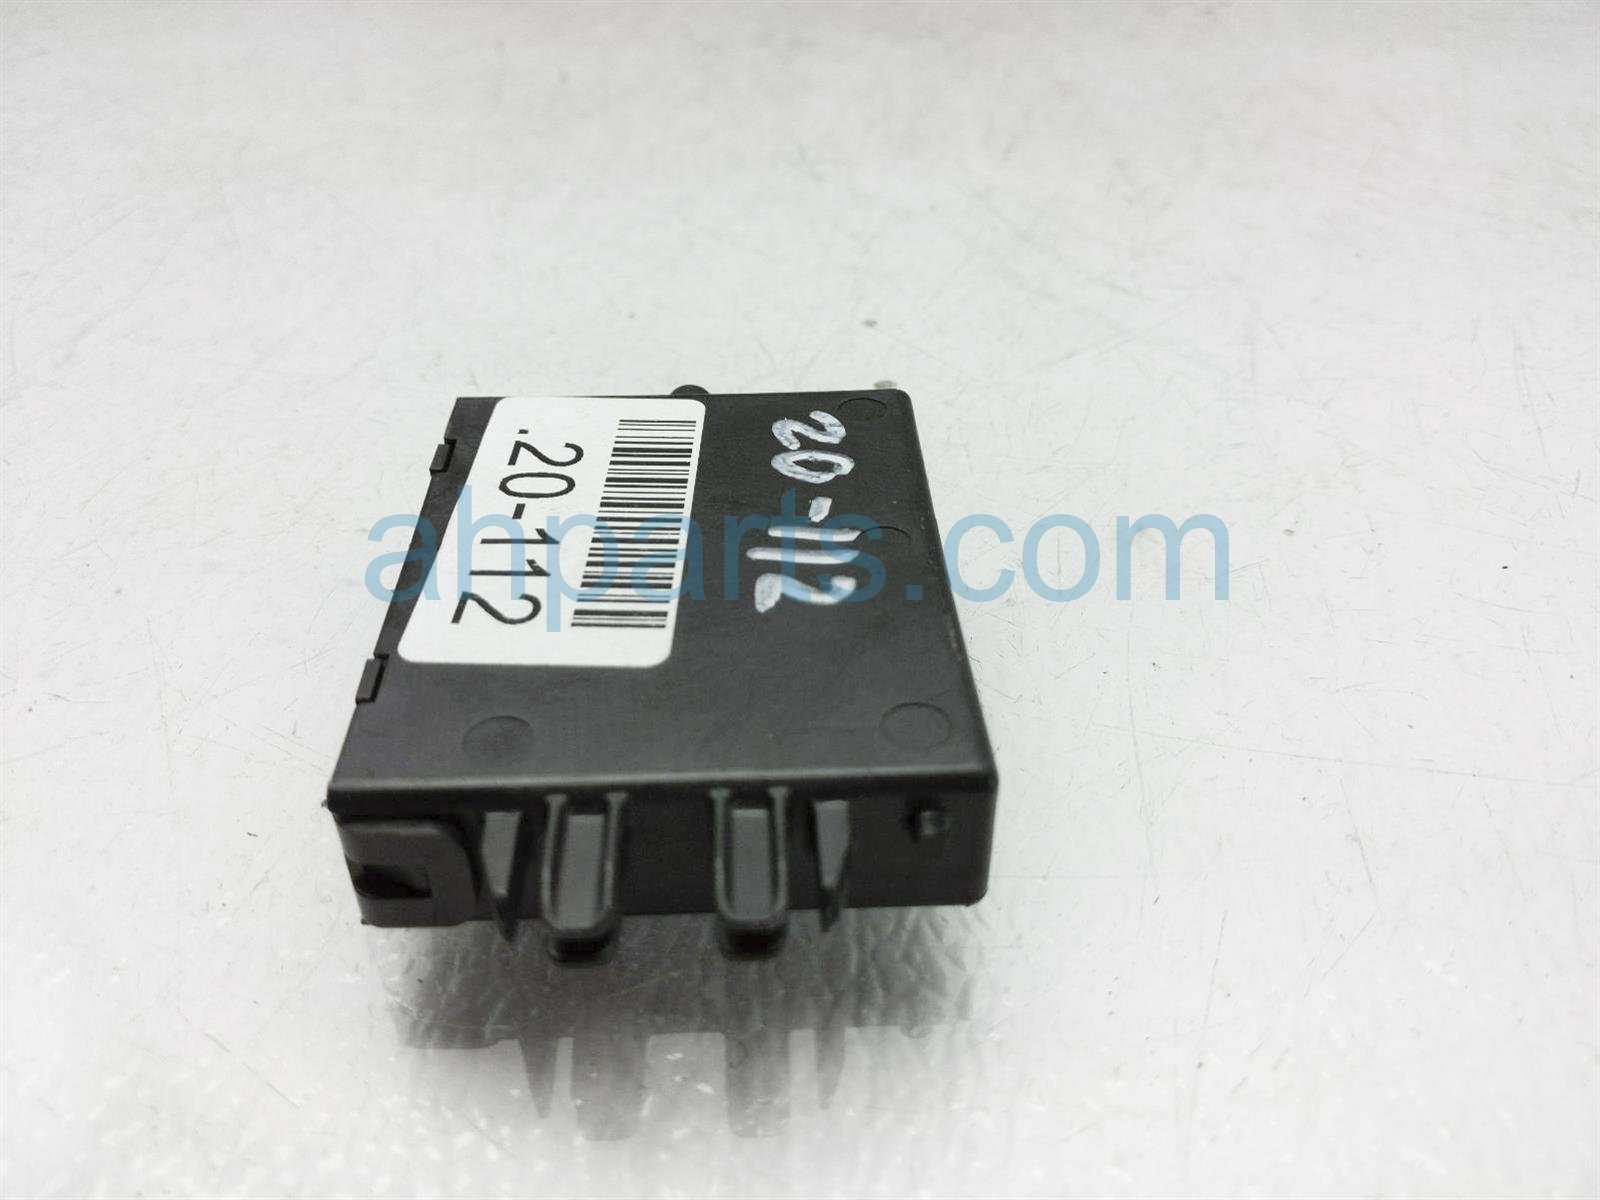 2013 Toyota Sienna Immobilizer Control Module 89780 08040 Replacement